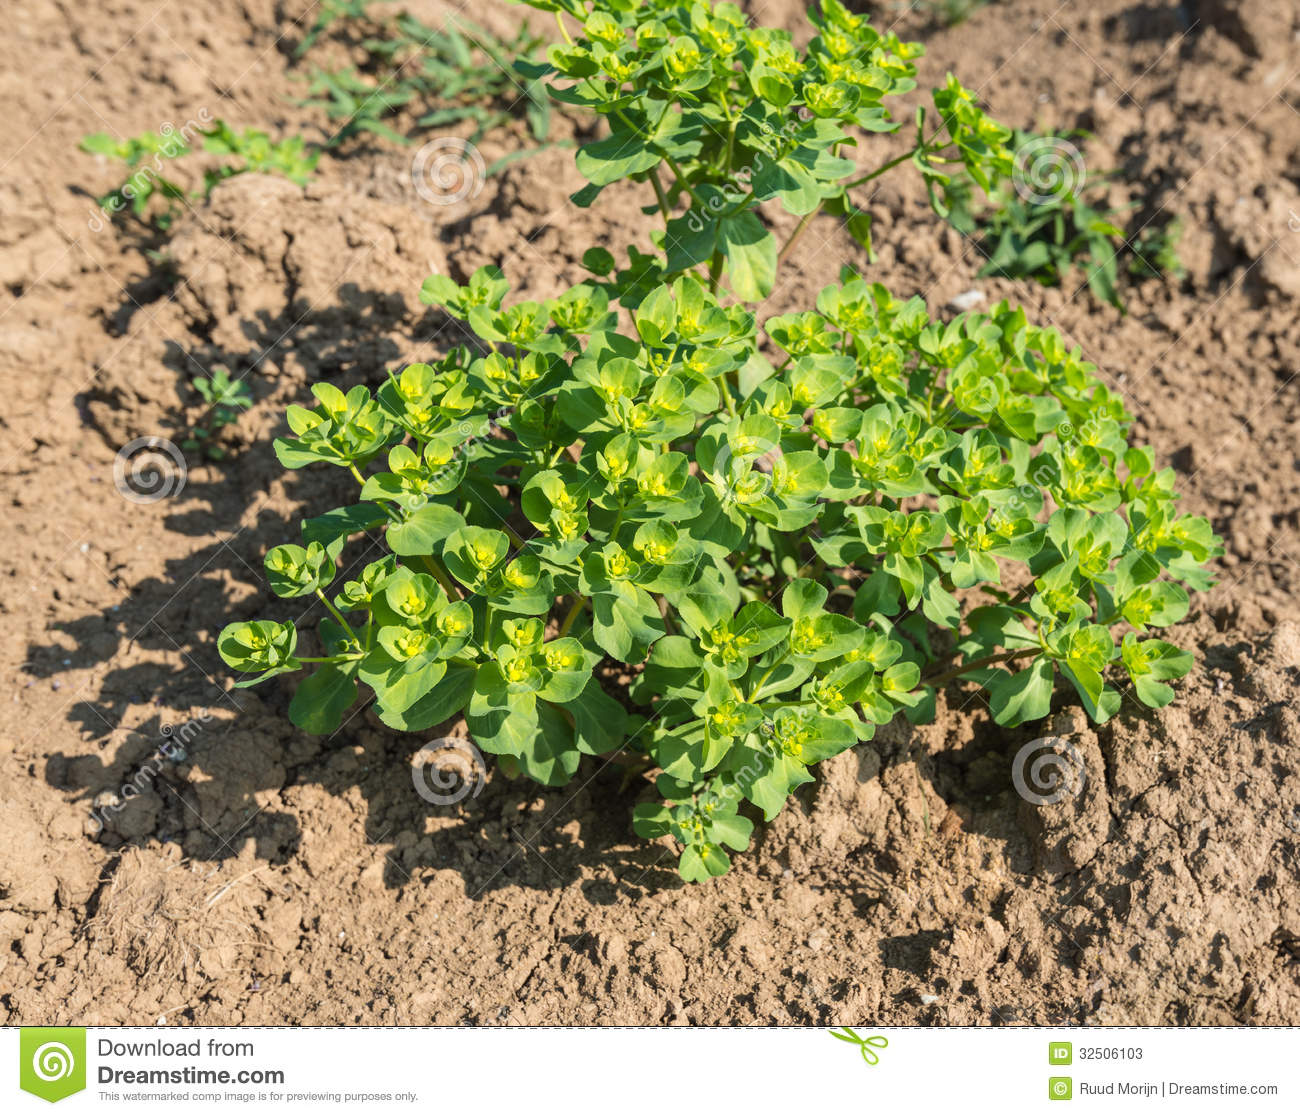 Closeup of a Sun Spurge plant in the soil